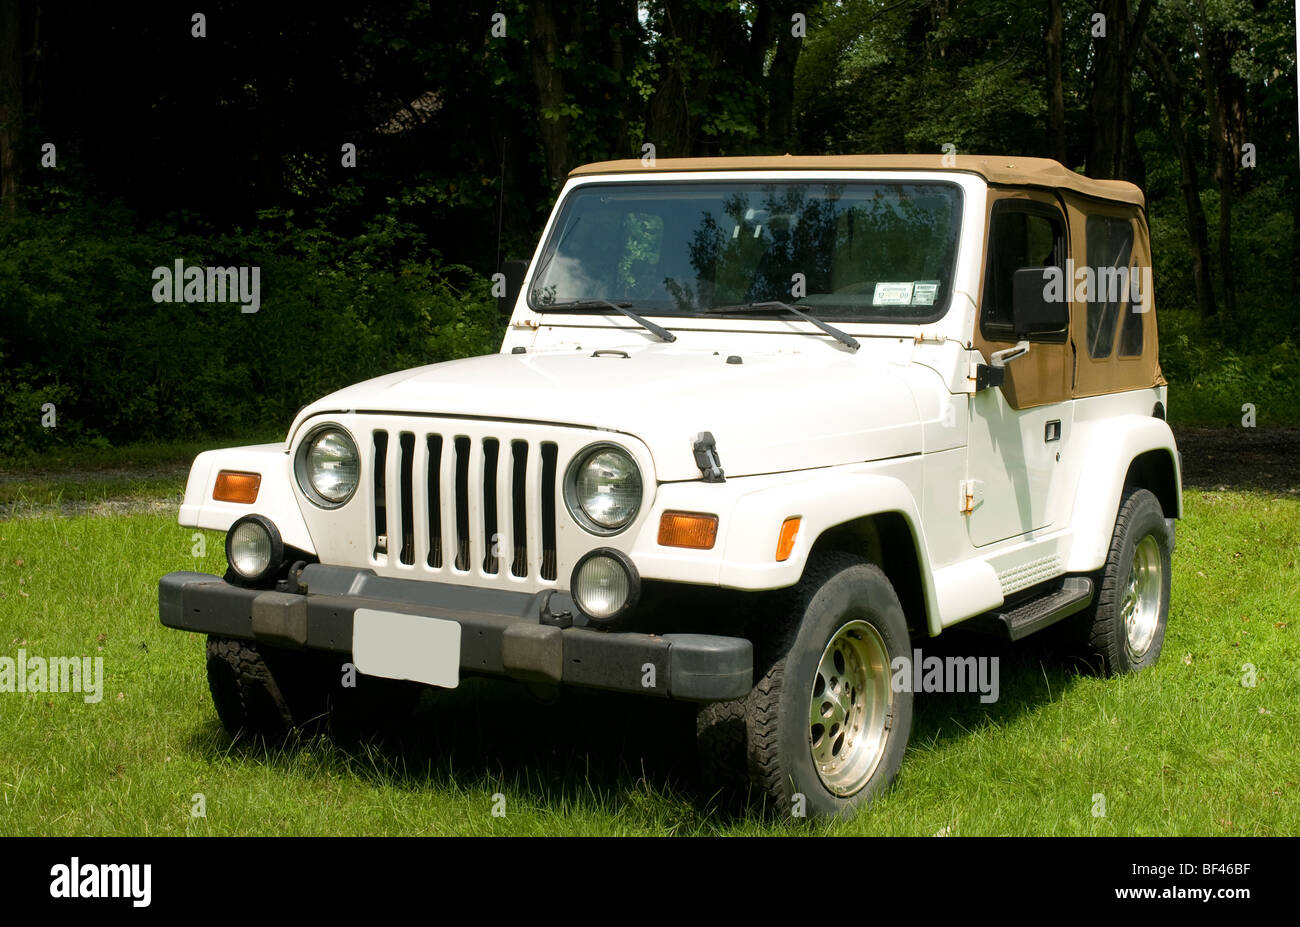 classic soft top utility four wheel drive truck vehicle on ...